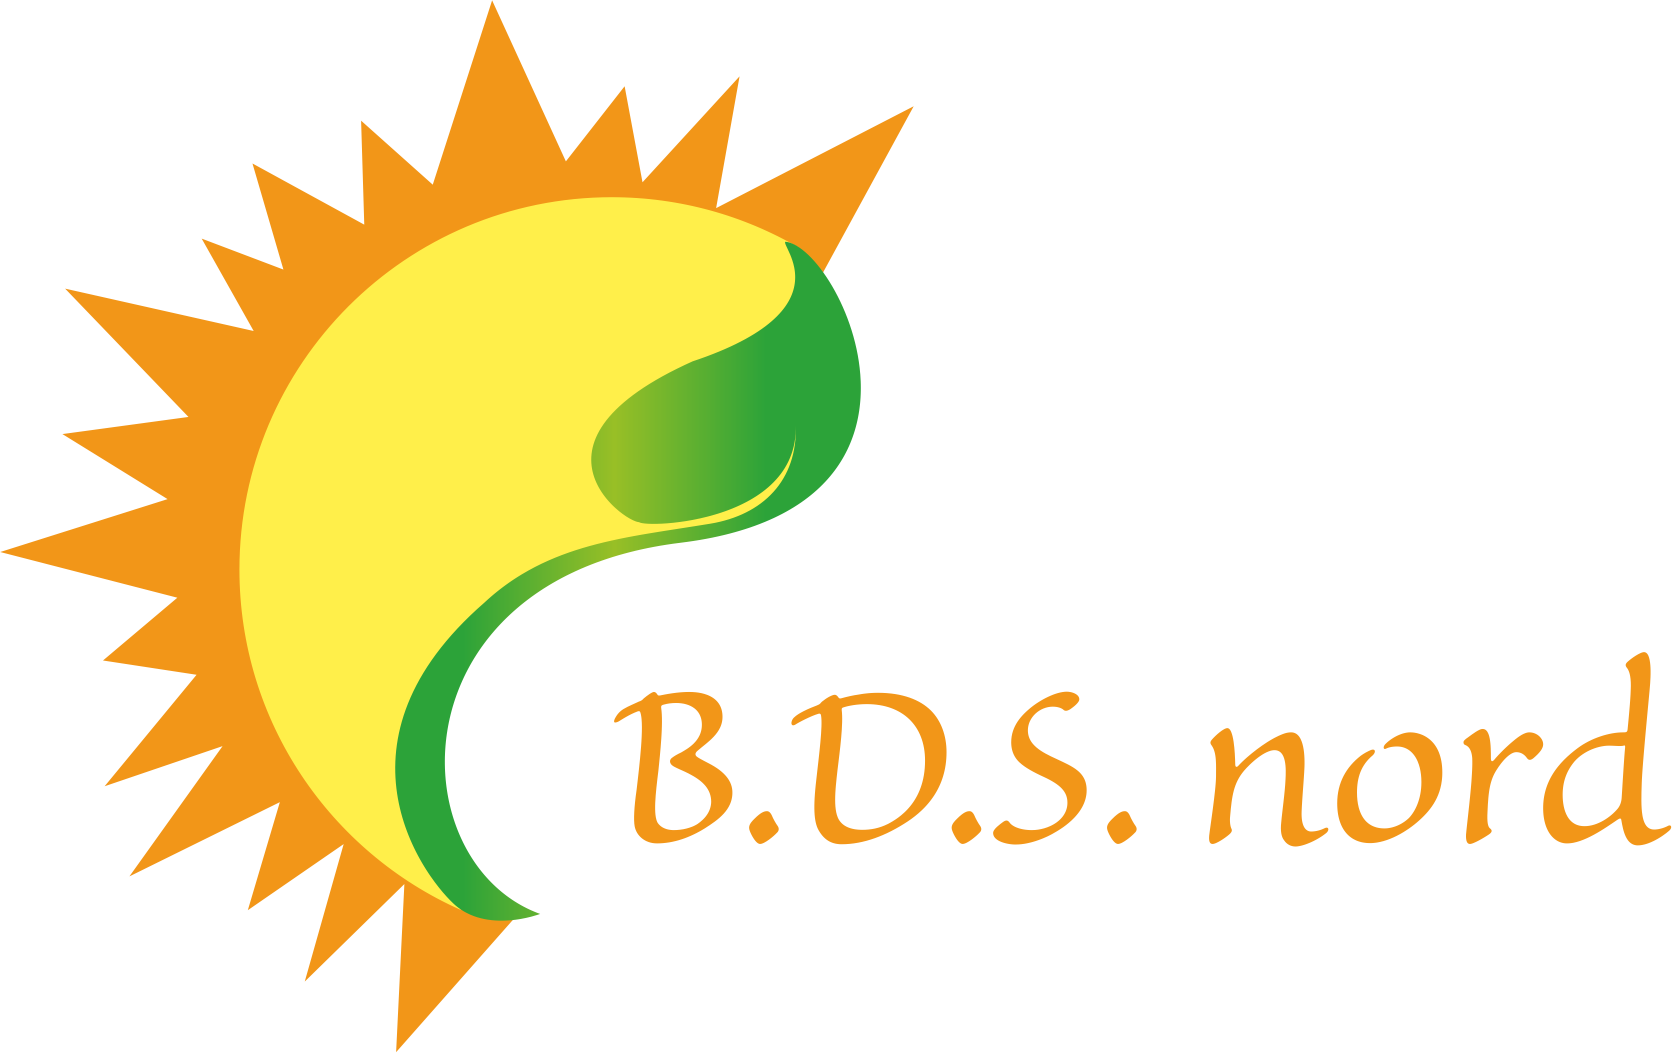 B.D.S. nord